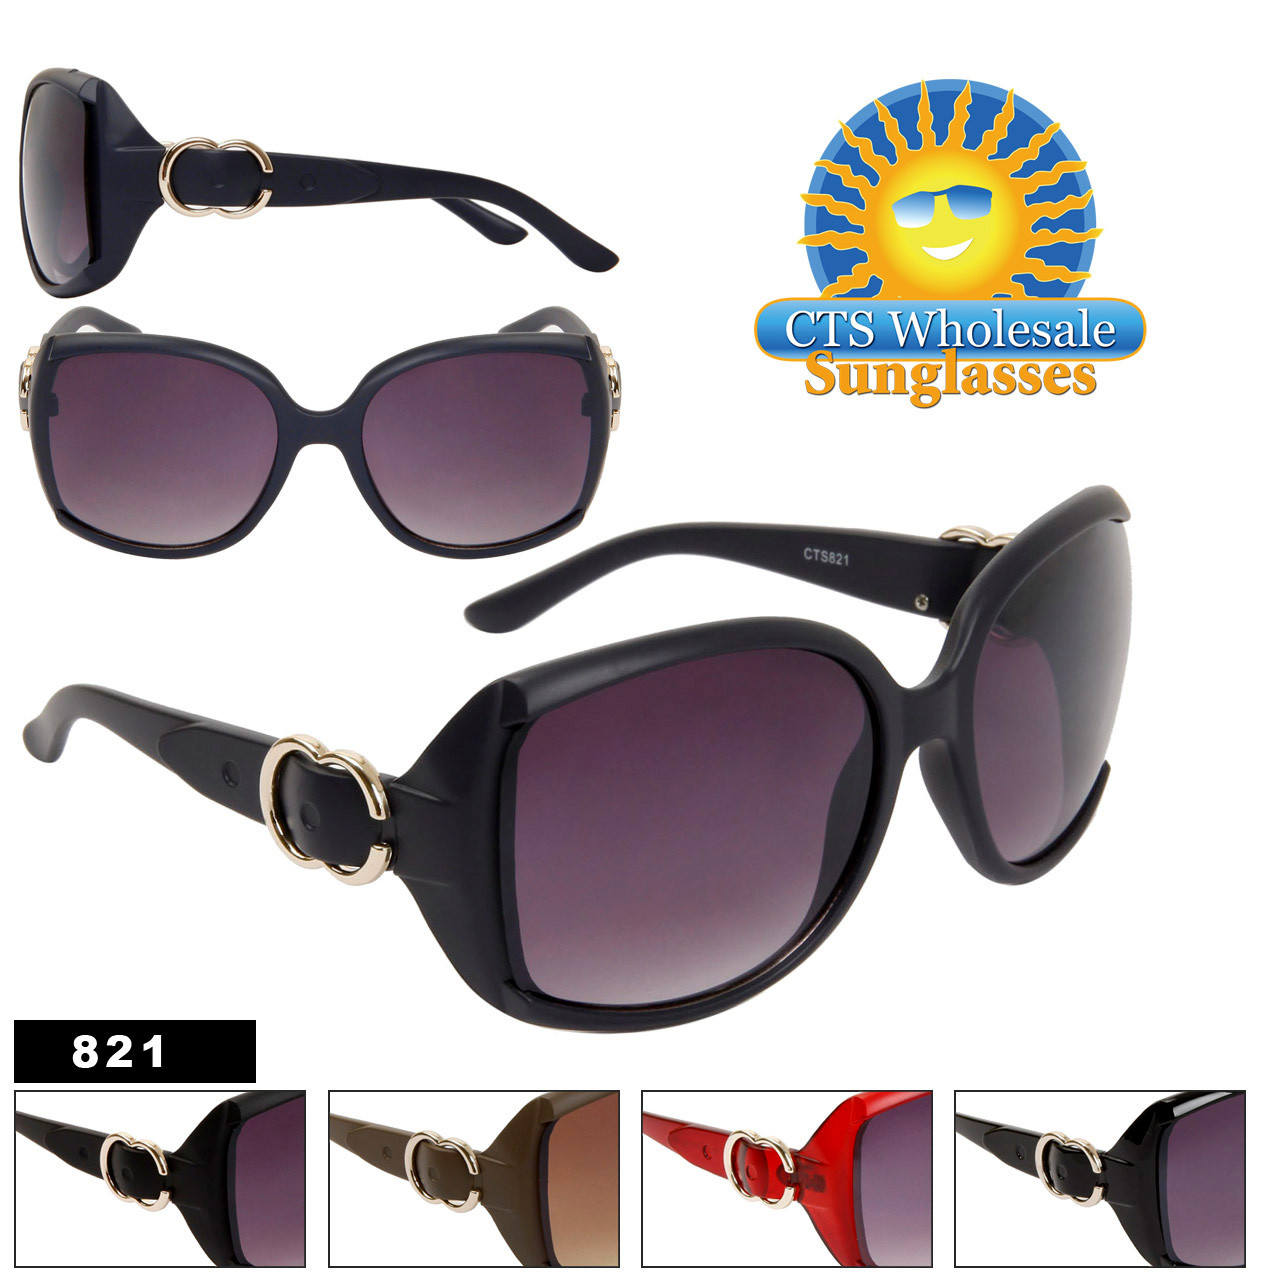 Cute New Fashion Sunglasses 821